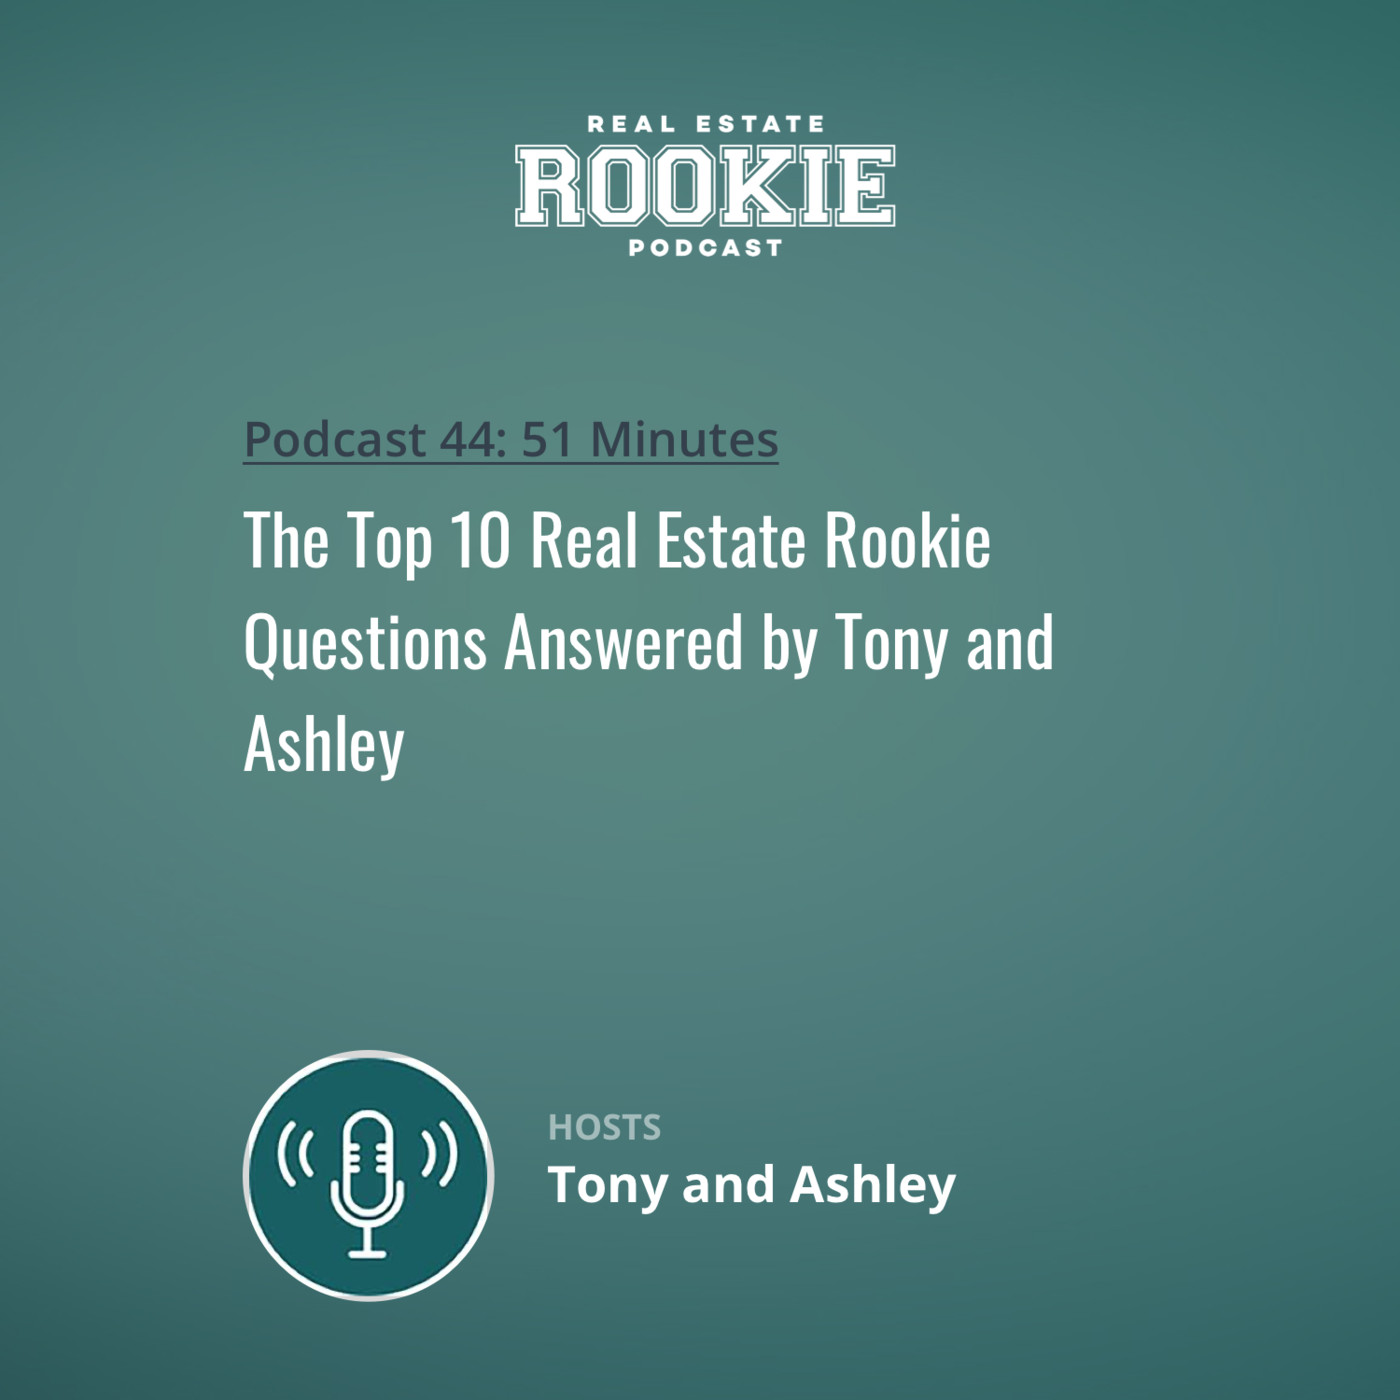 The Top 10 Real Estate Rookie Questions Answered by Tony and Ashley